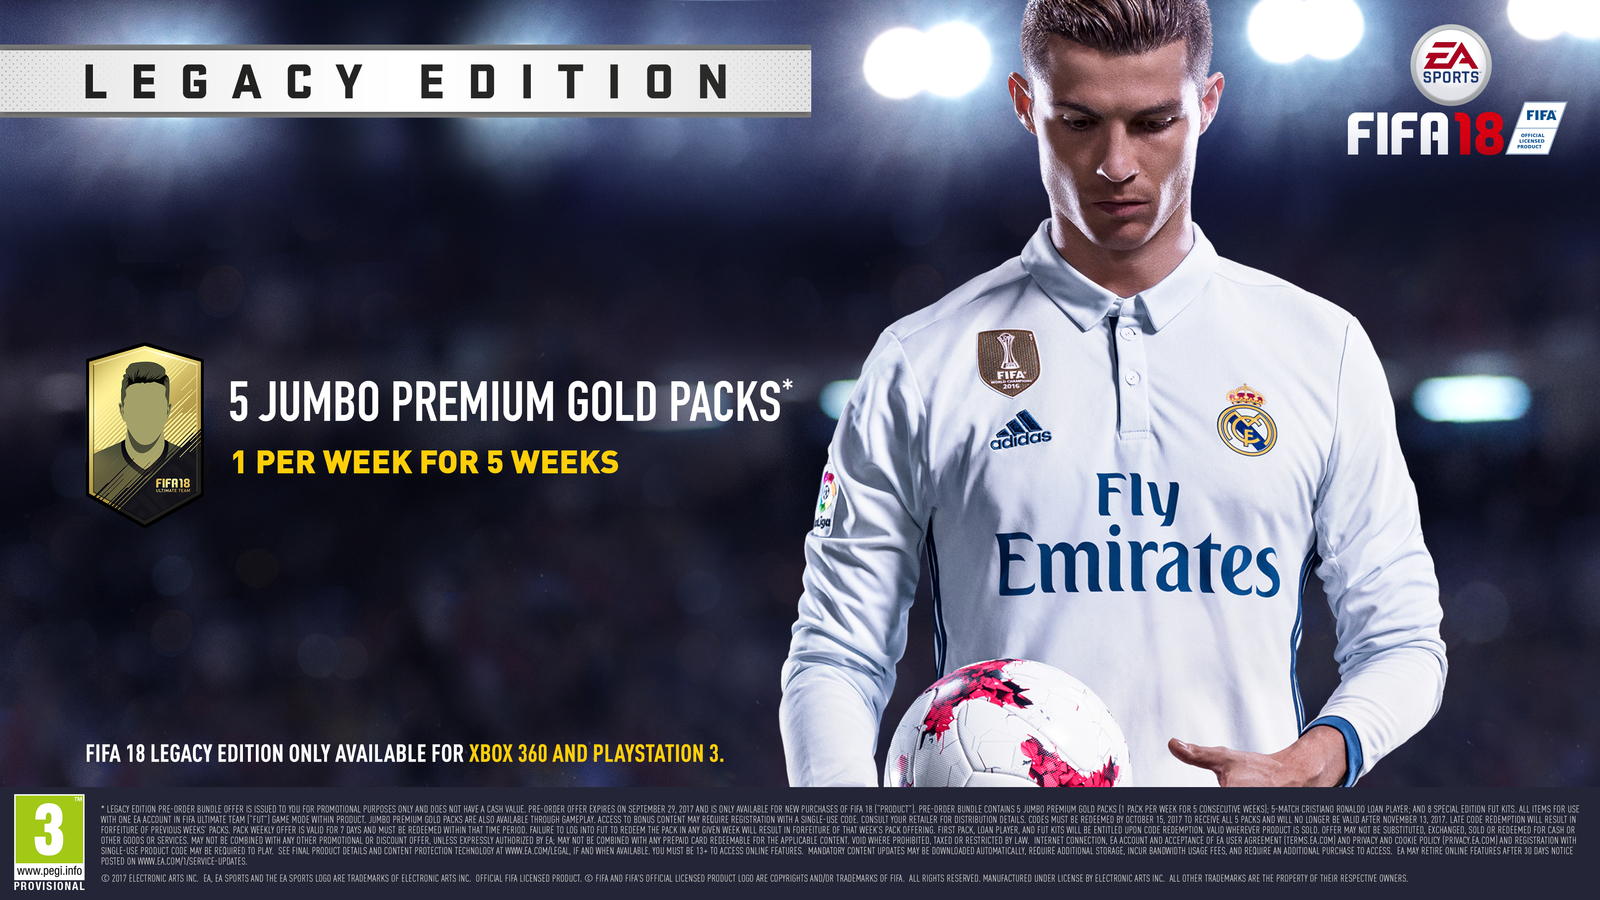 FIFA 18 Legacy Edition for Xbox 360 image